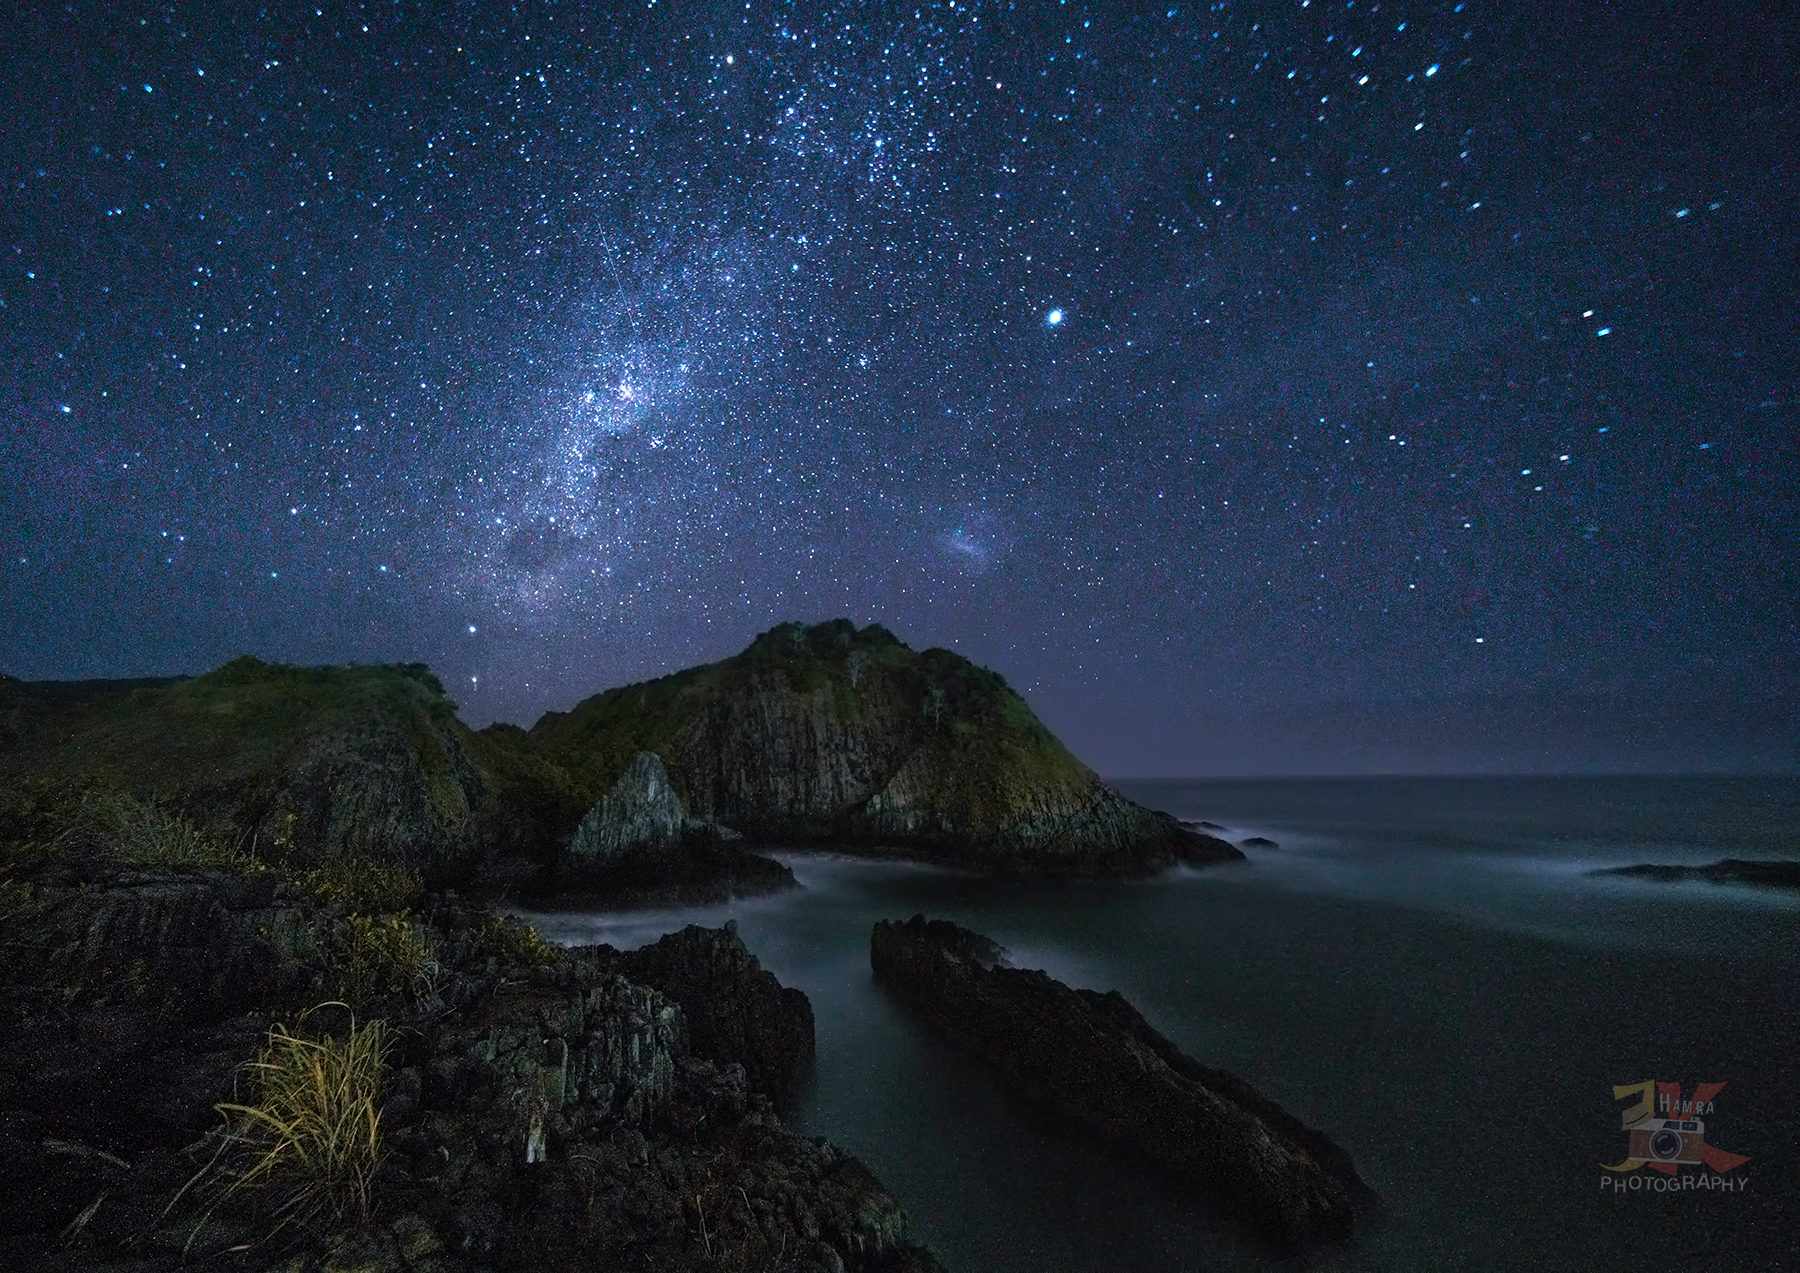 Milkyway at Pantai Semeti, Indonesia